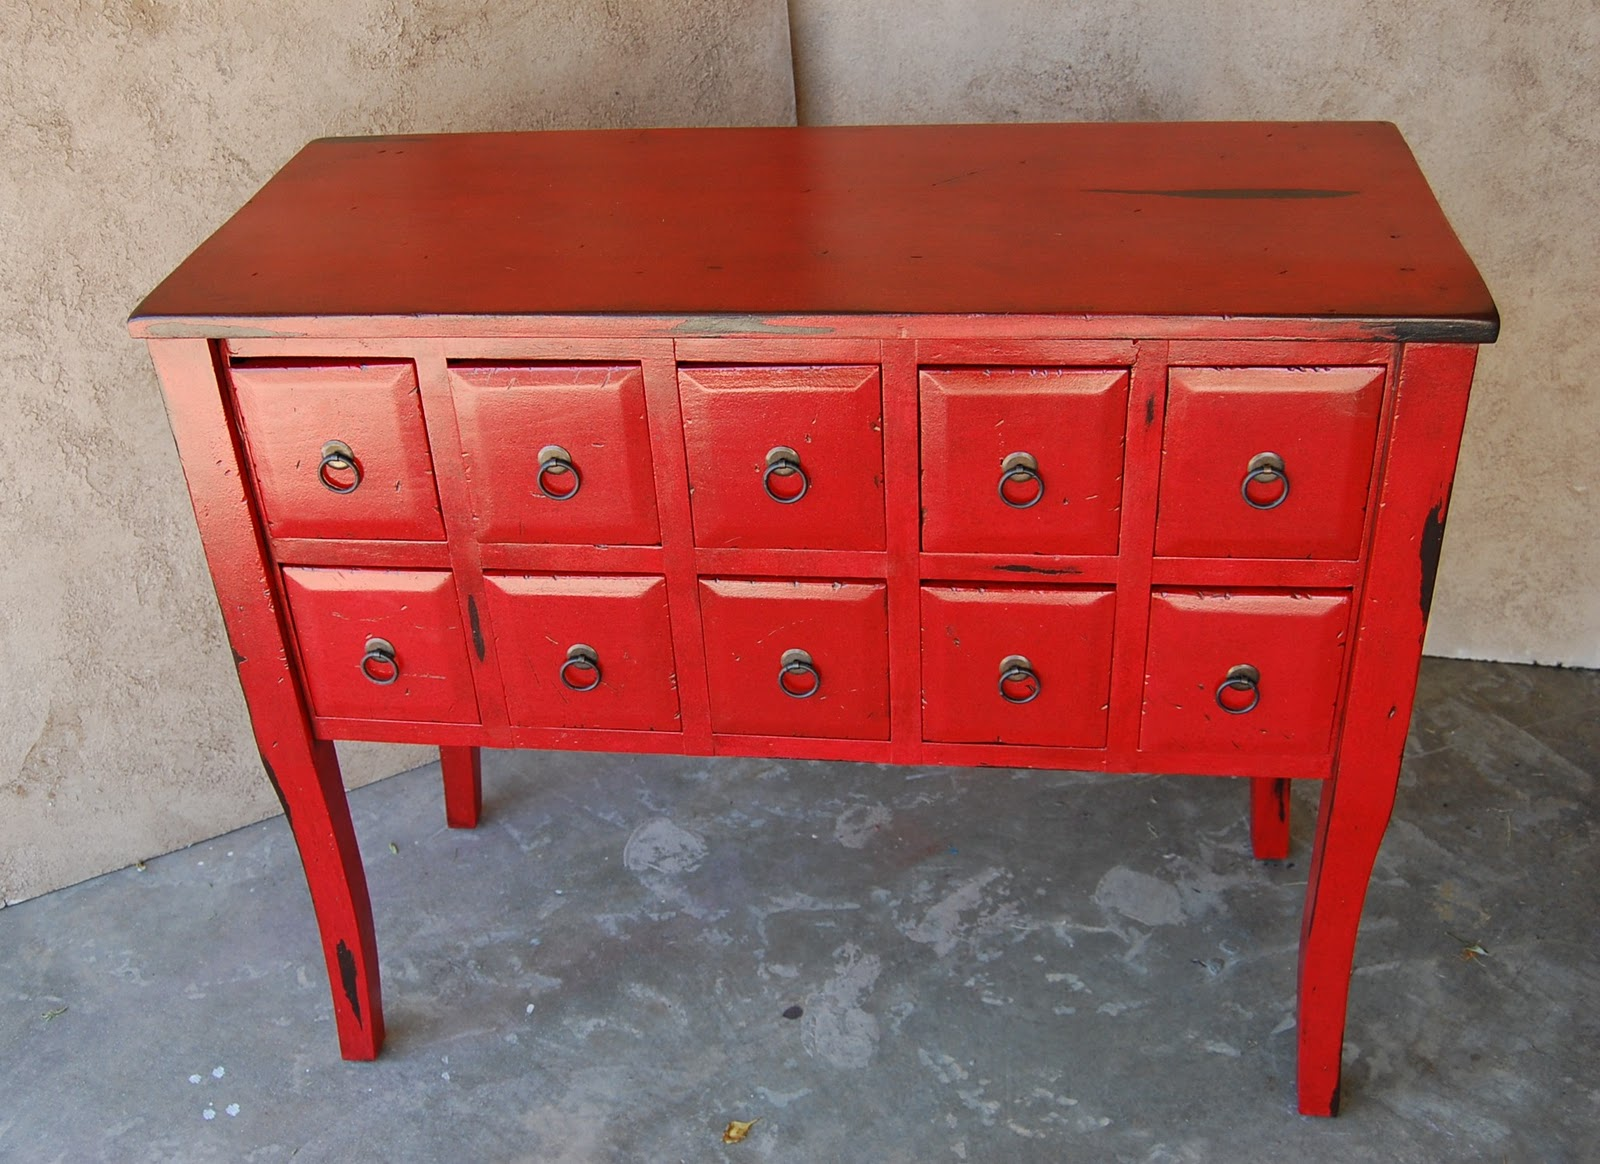 Kcfauxdesign red chinese apothecary cabinet for Red chinese furniture